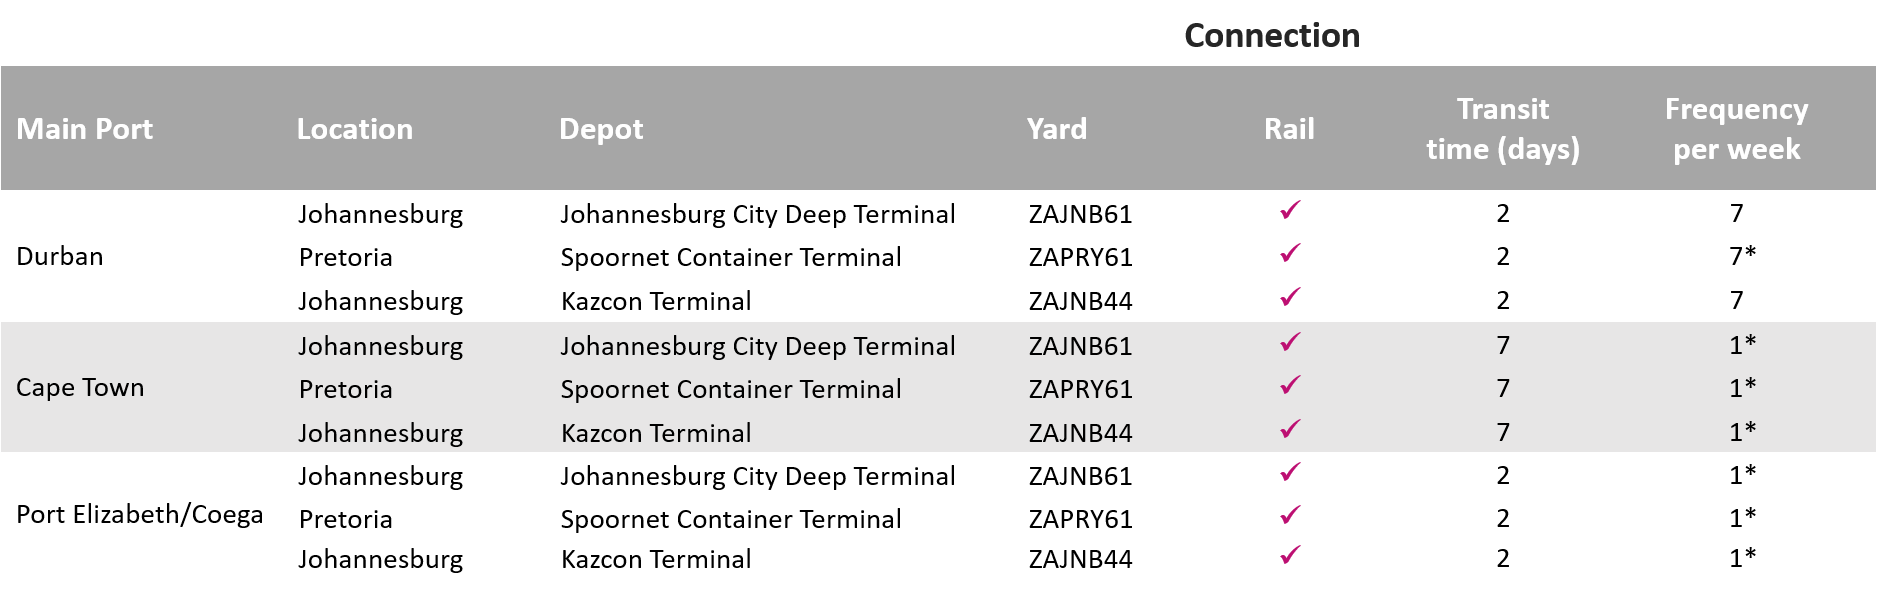 Carrier haulage depots and transit times_South Africa